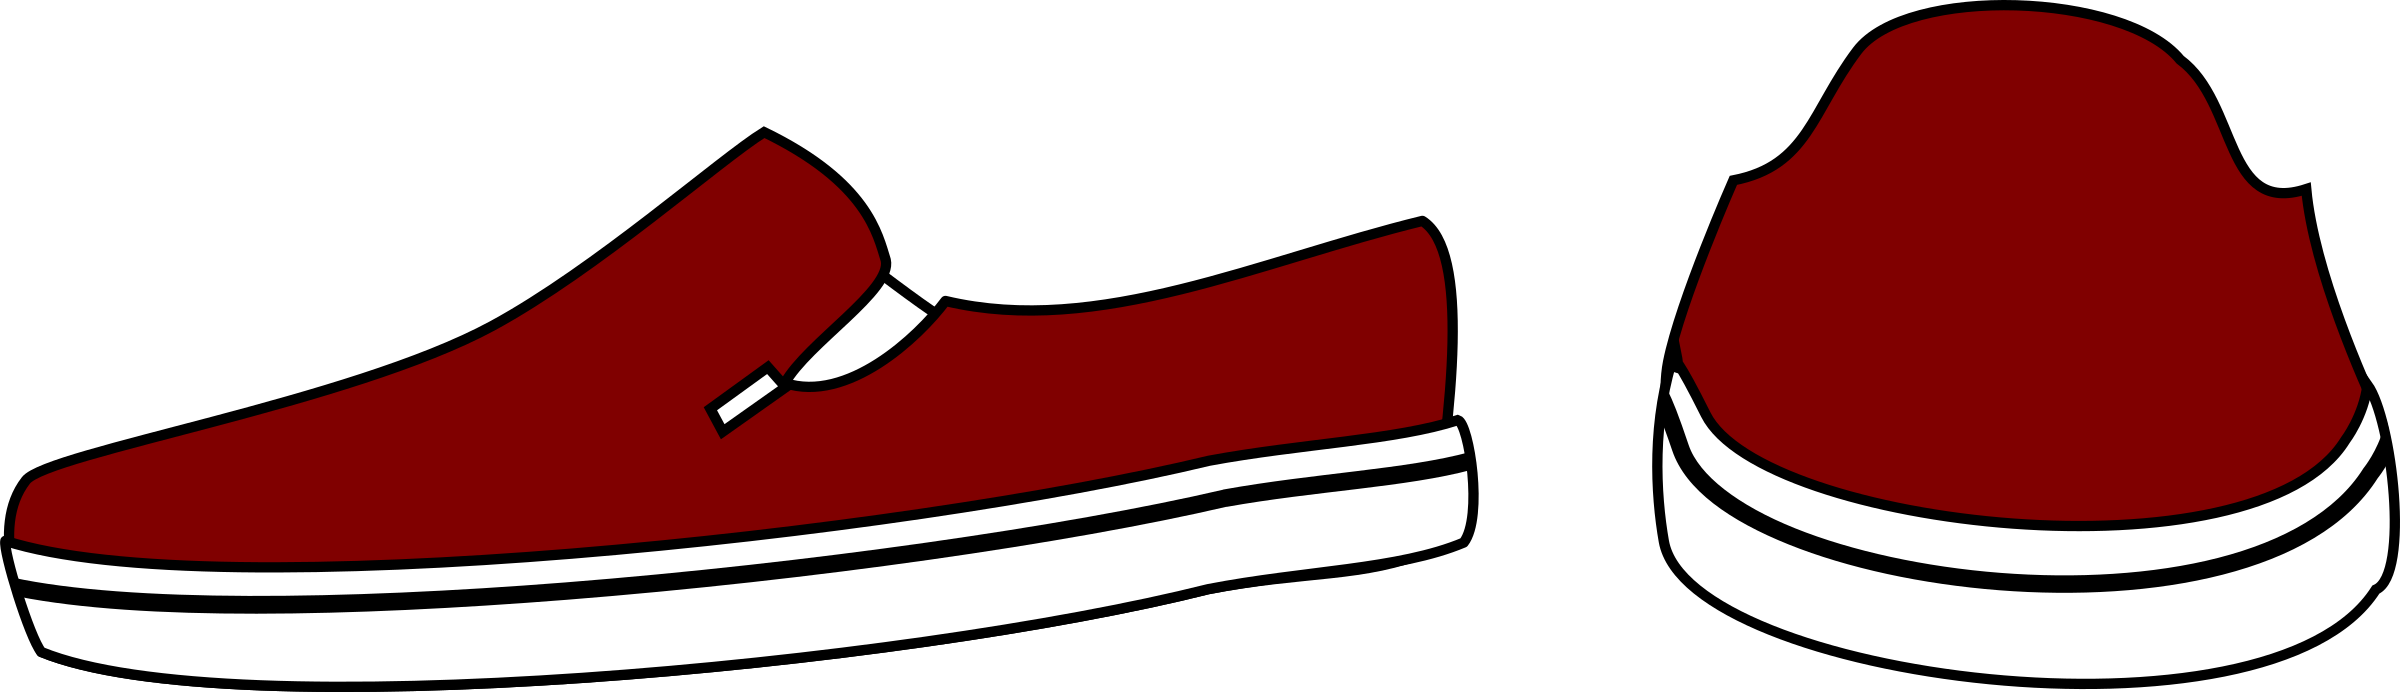 Slip on shoes big. Wet clipart slips trip